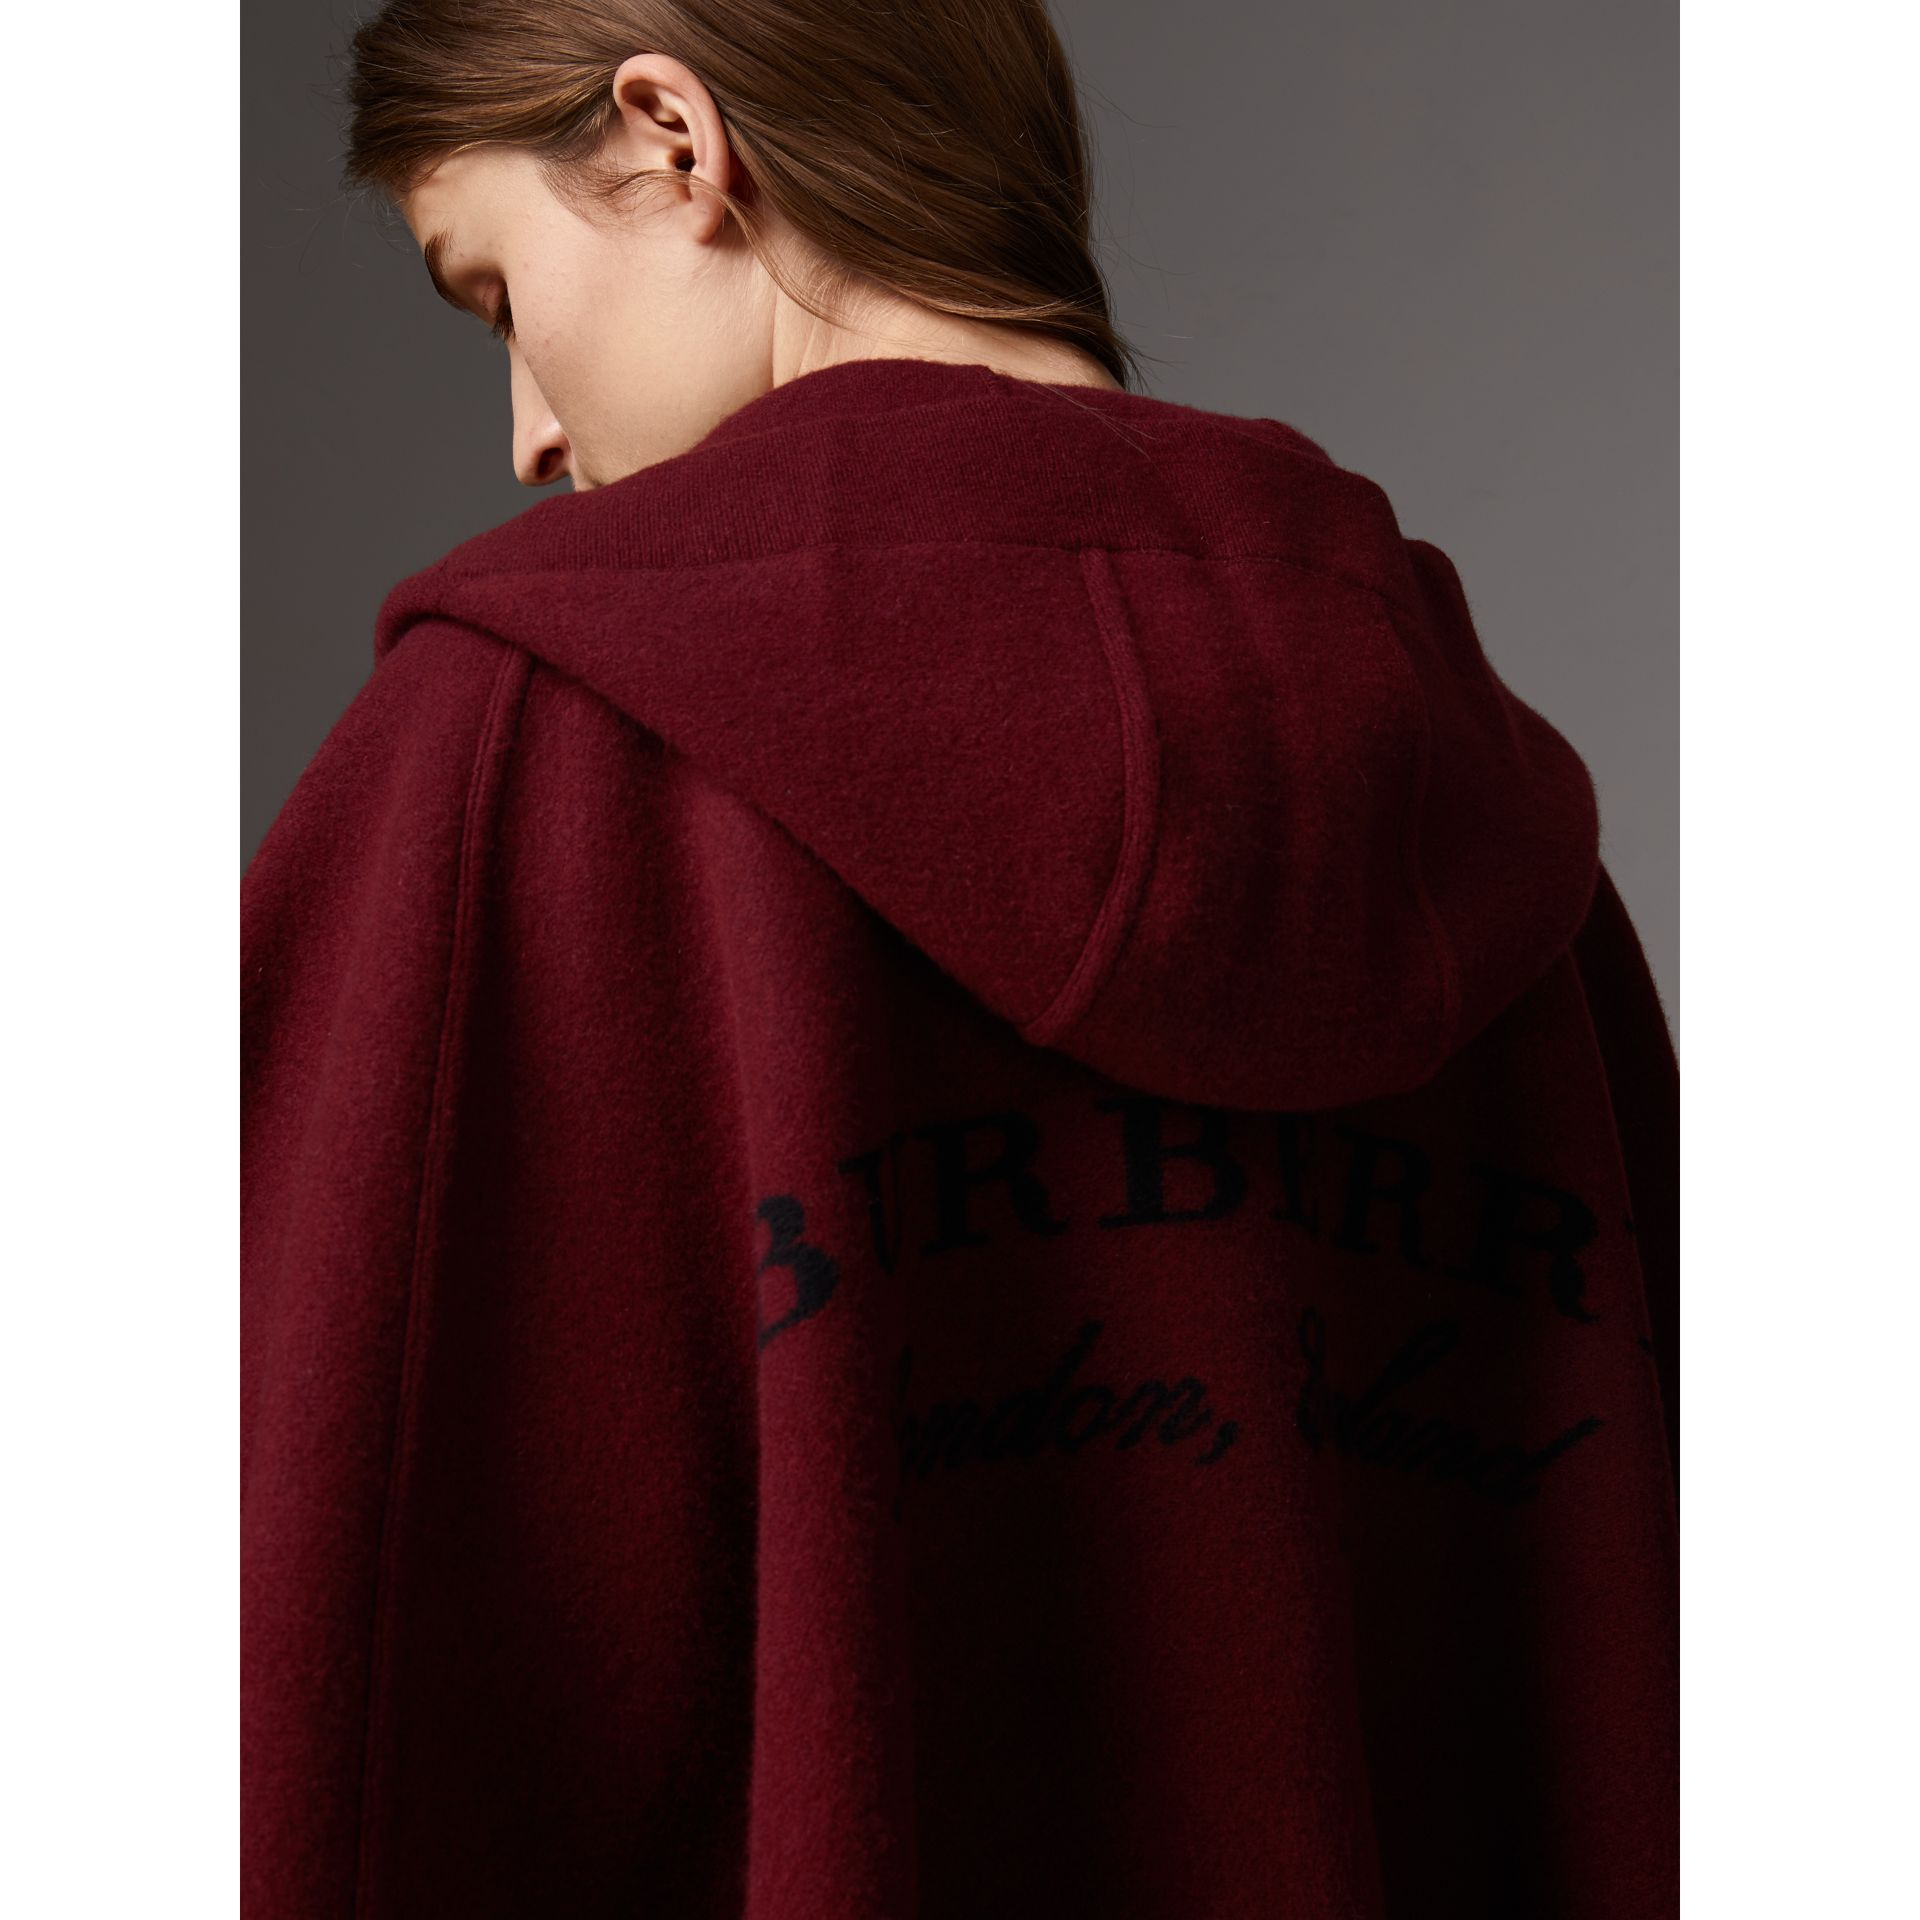 Wool Cashmere Blend Hooded Poncho in Deep Red - Women | Burberry Singapore - gallery image 1